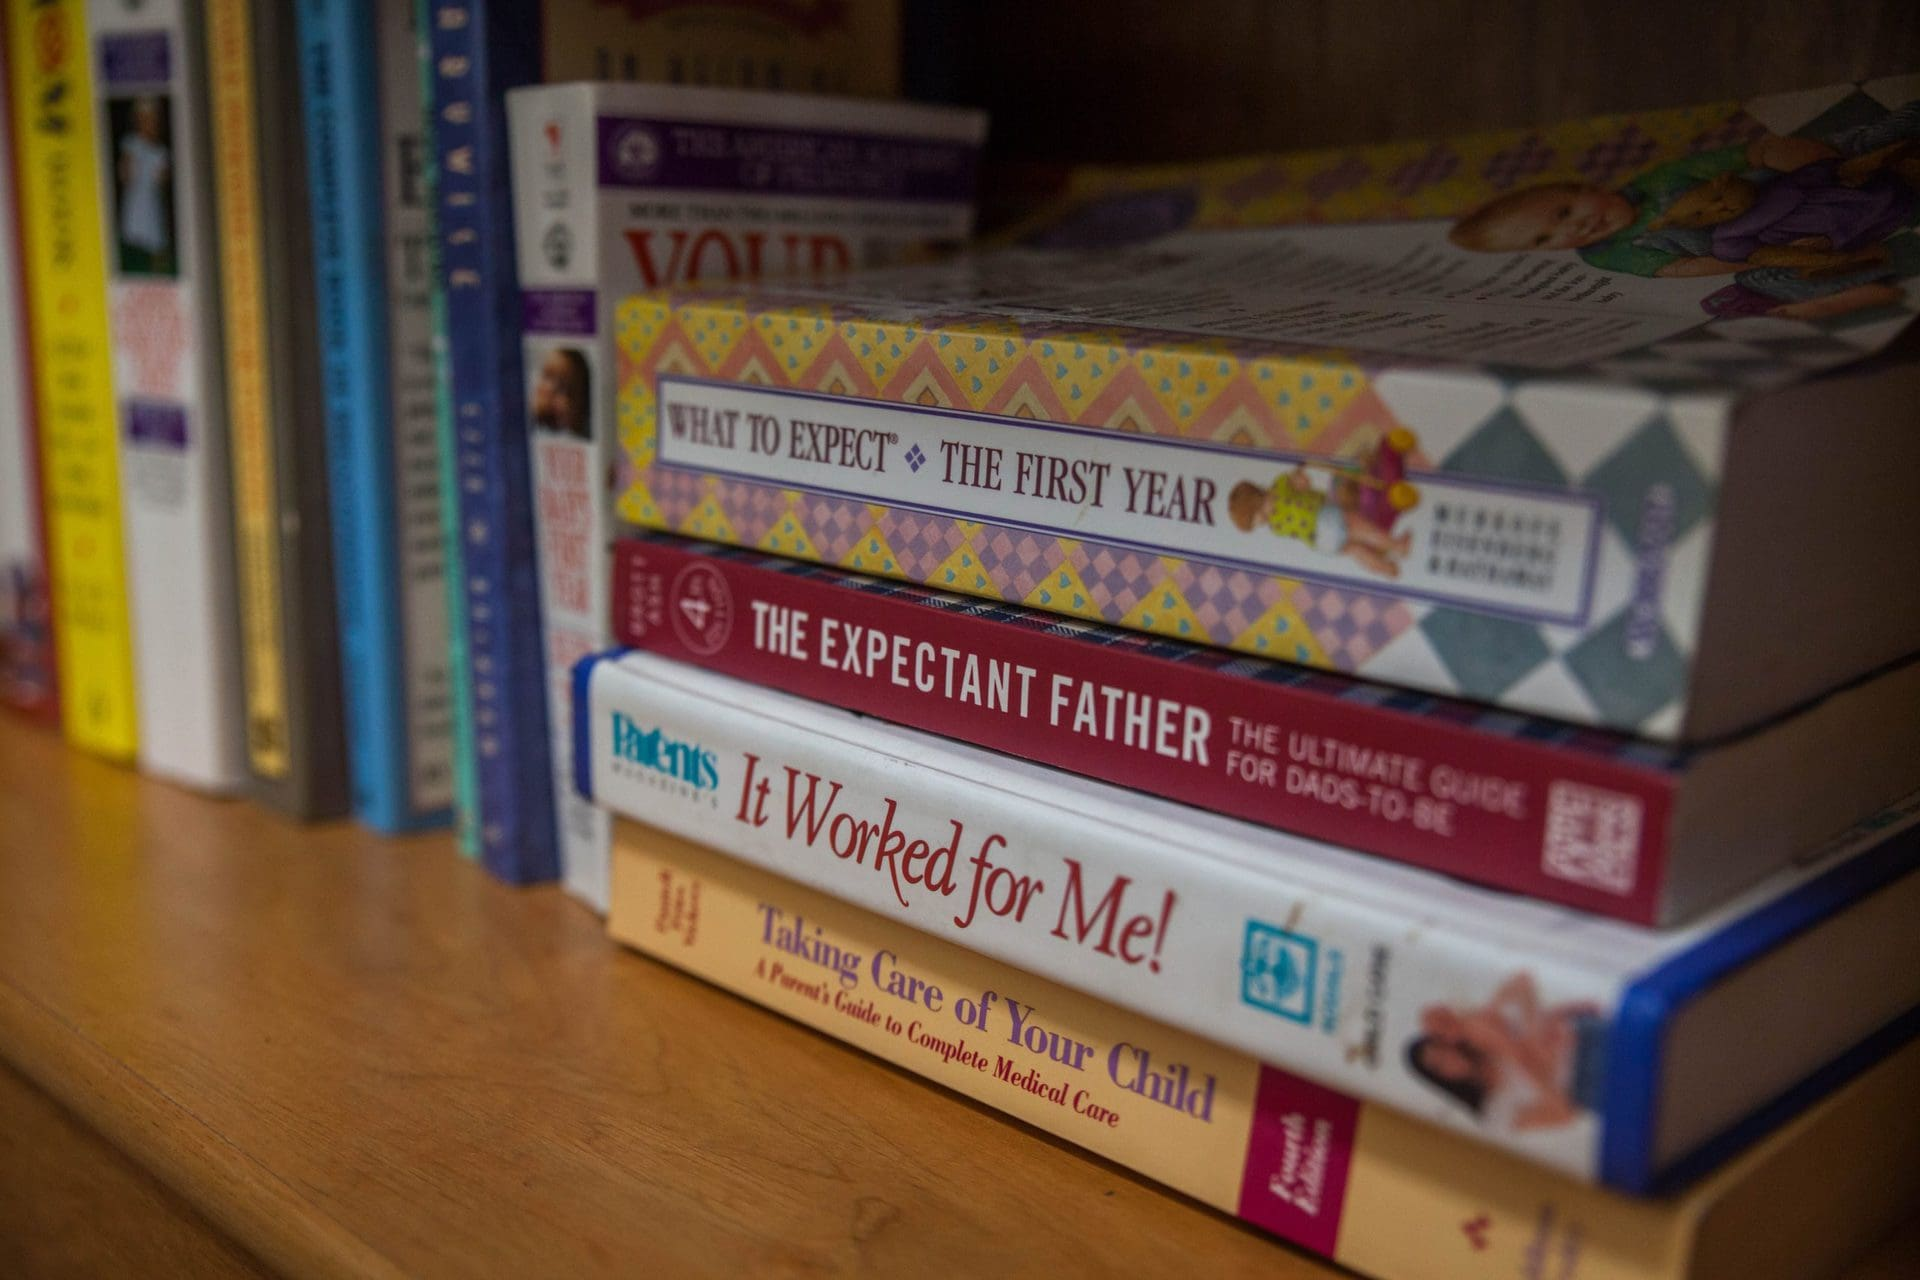 Books about pregnancy and parenting